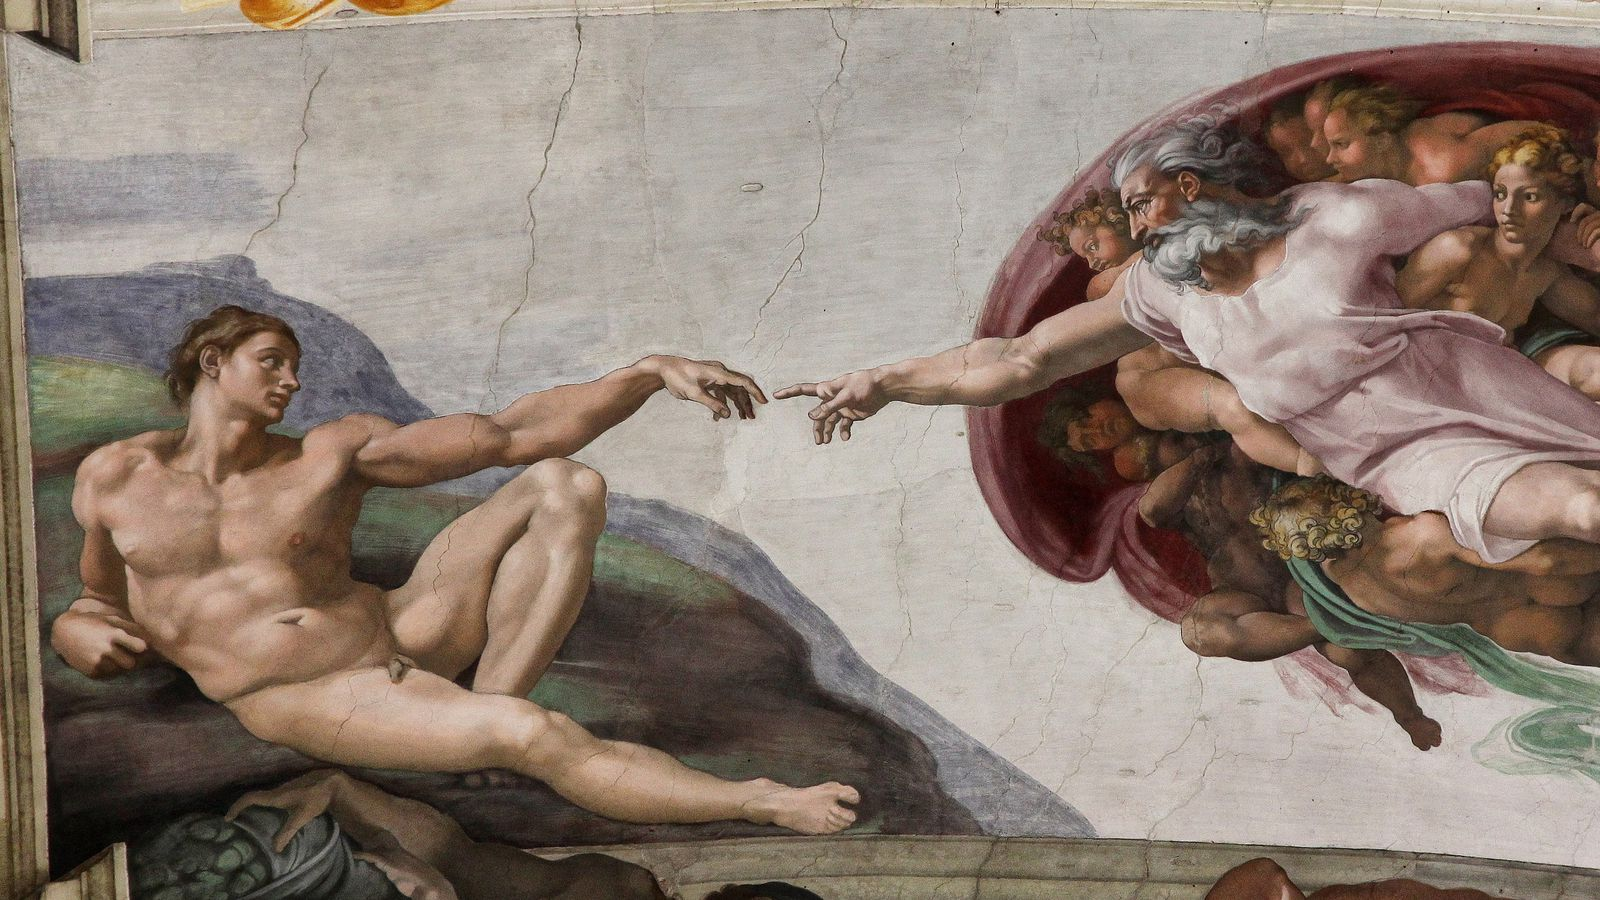 _adam_s_creation_sistine_chapel_ceiling_by_michelangelo_jbu33cut_0.jpeg